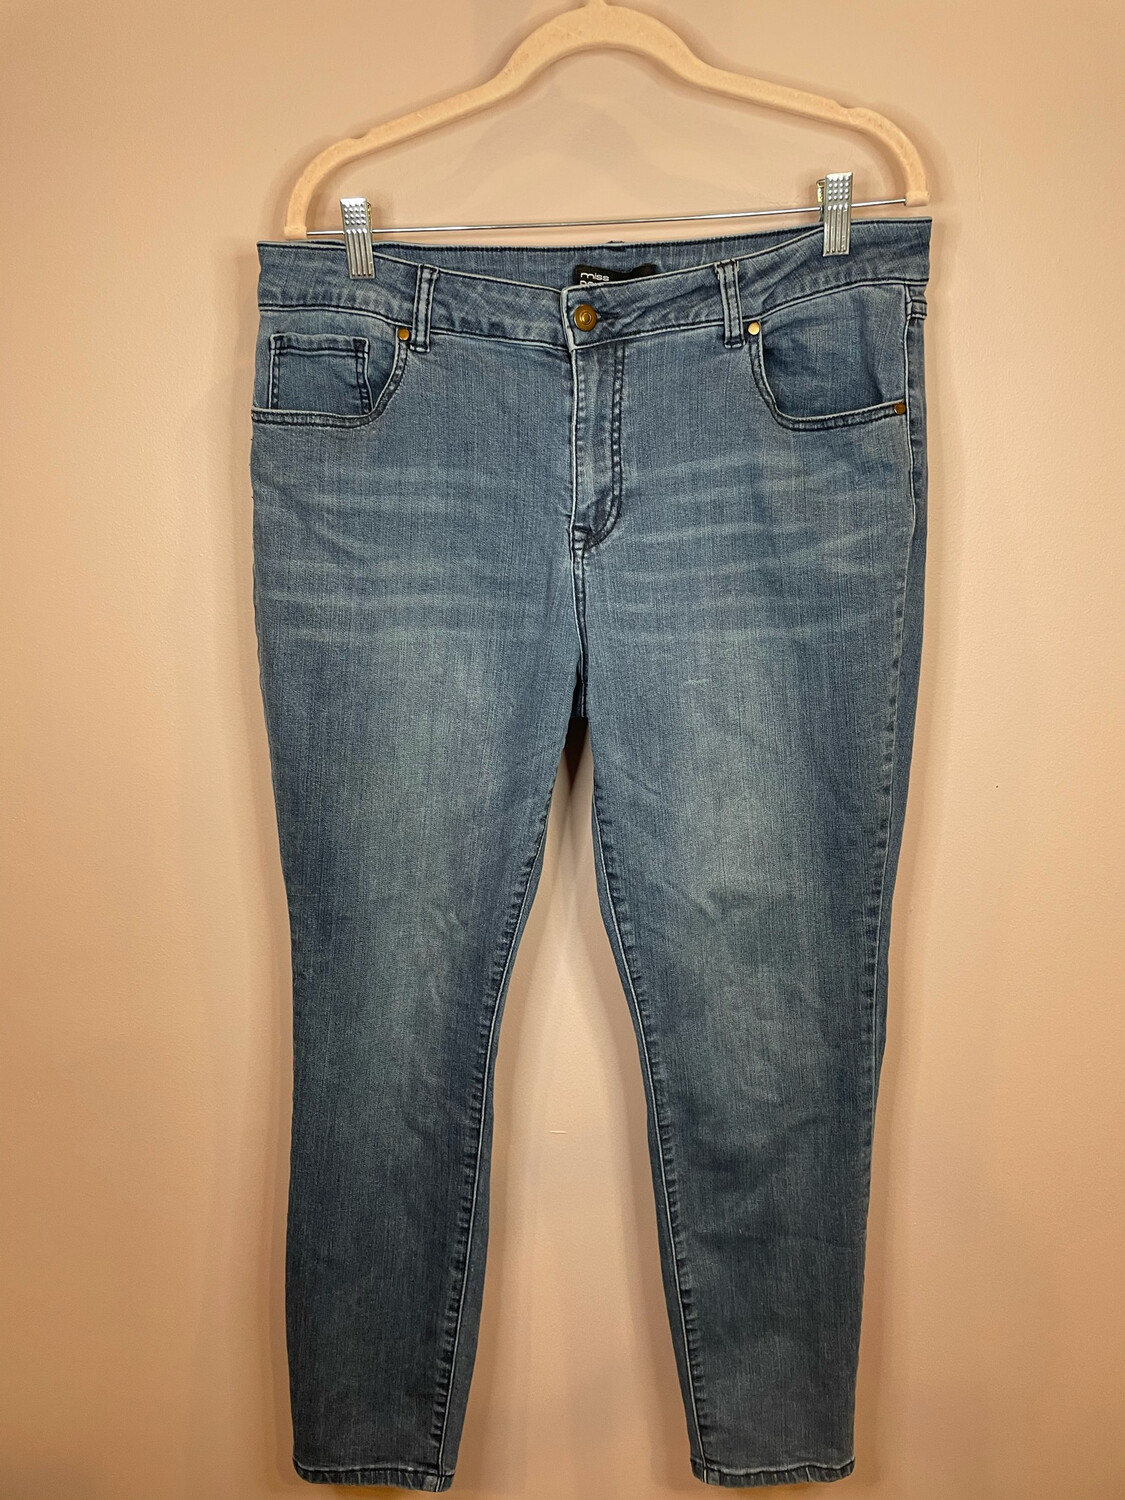 Miss Poured in Blue Denim - Size 14